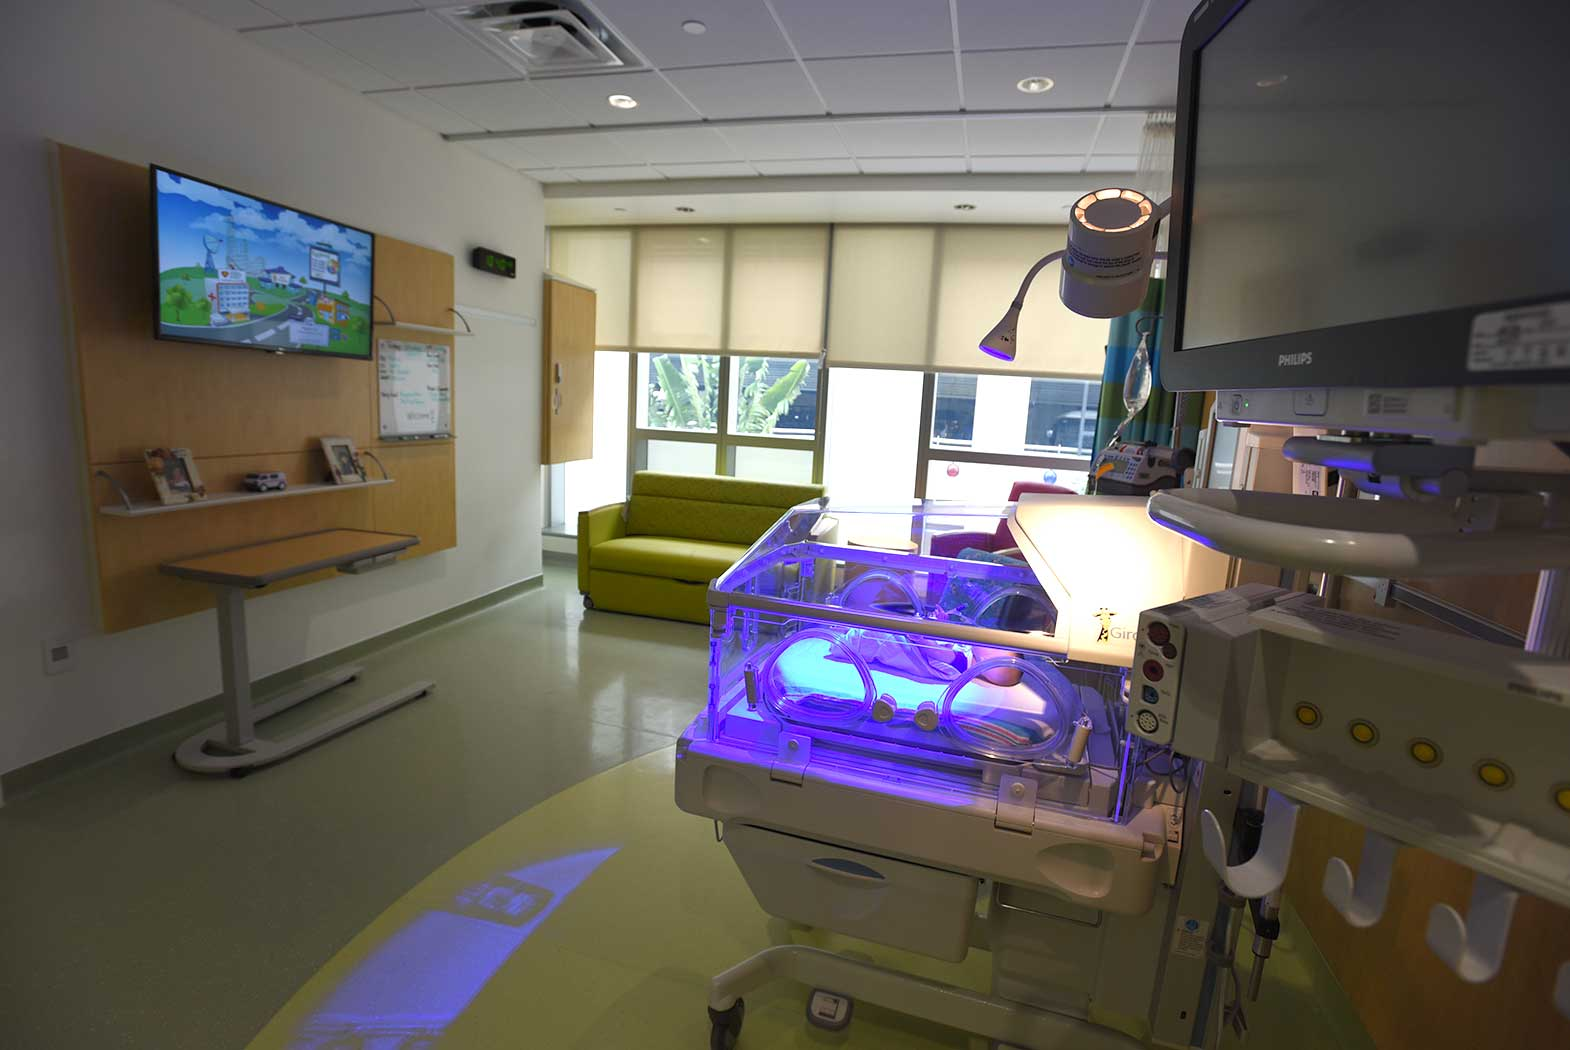 new pediatric pavilion offers advanced care plus comforts of home the new advanced pediatric care pavilion at nicklaus children s hospital in miami offers the latest medical technology and also emphasizes a homelike and